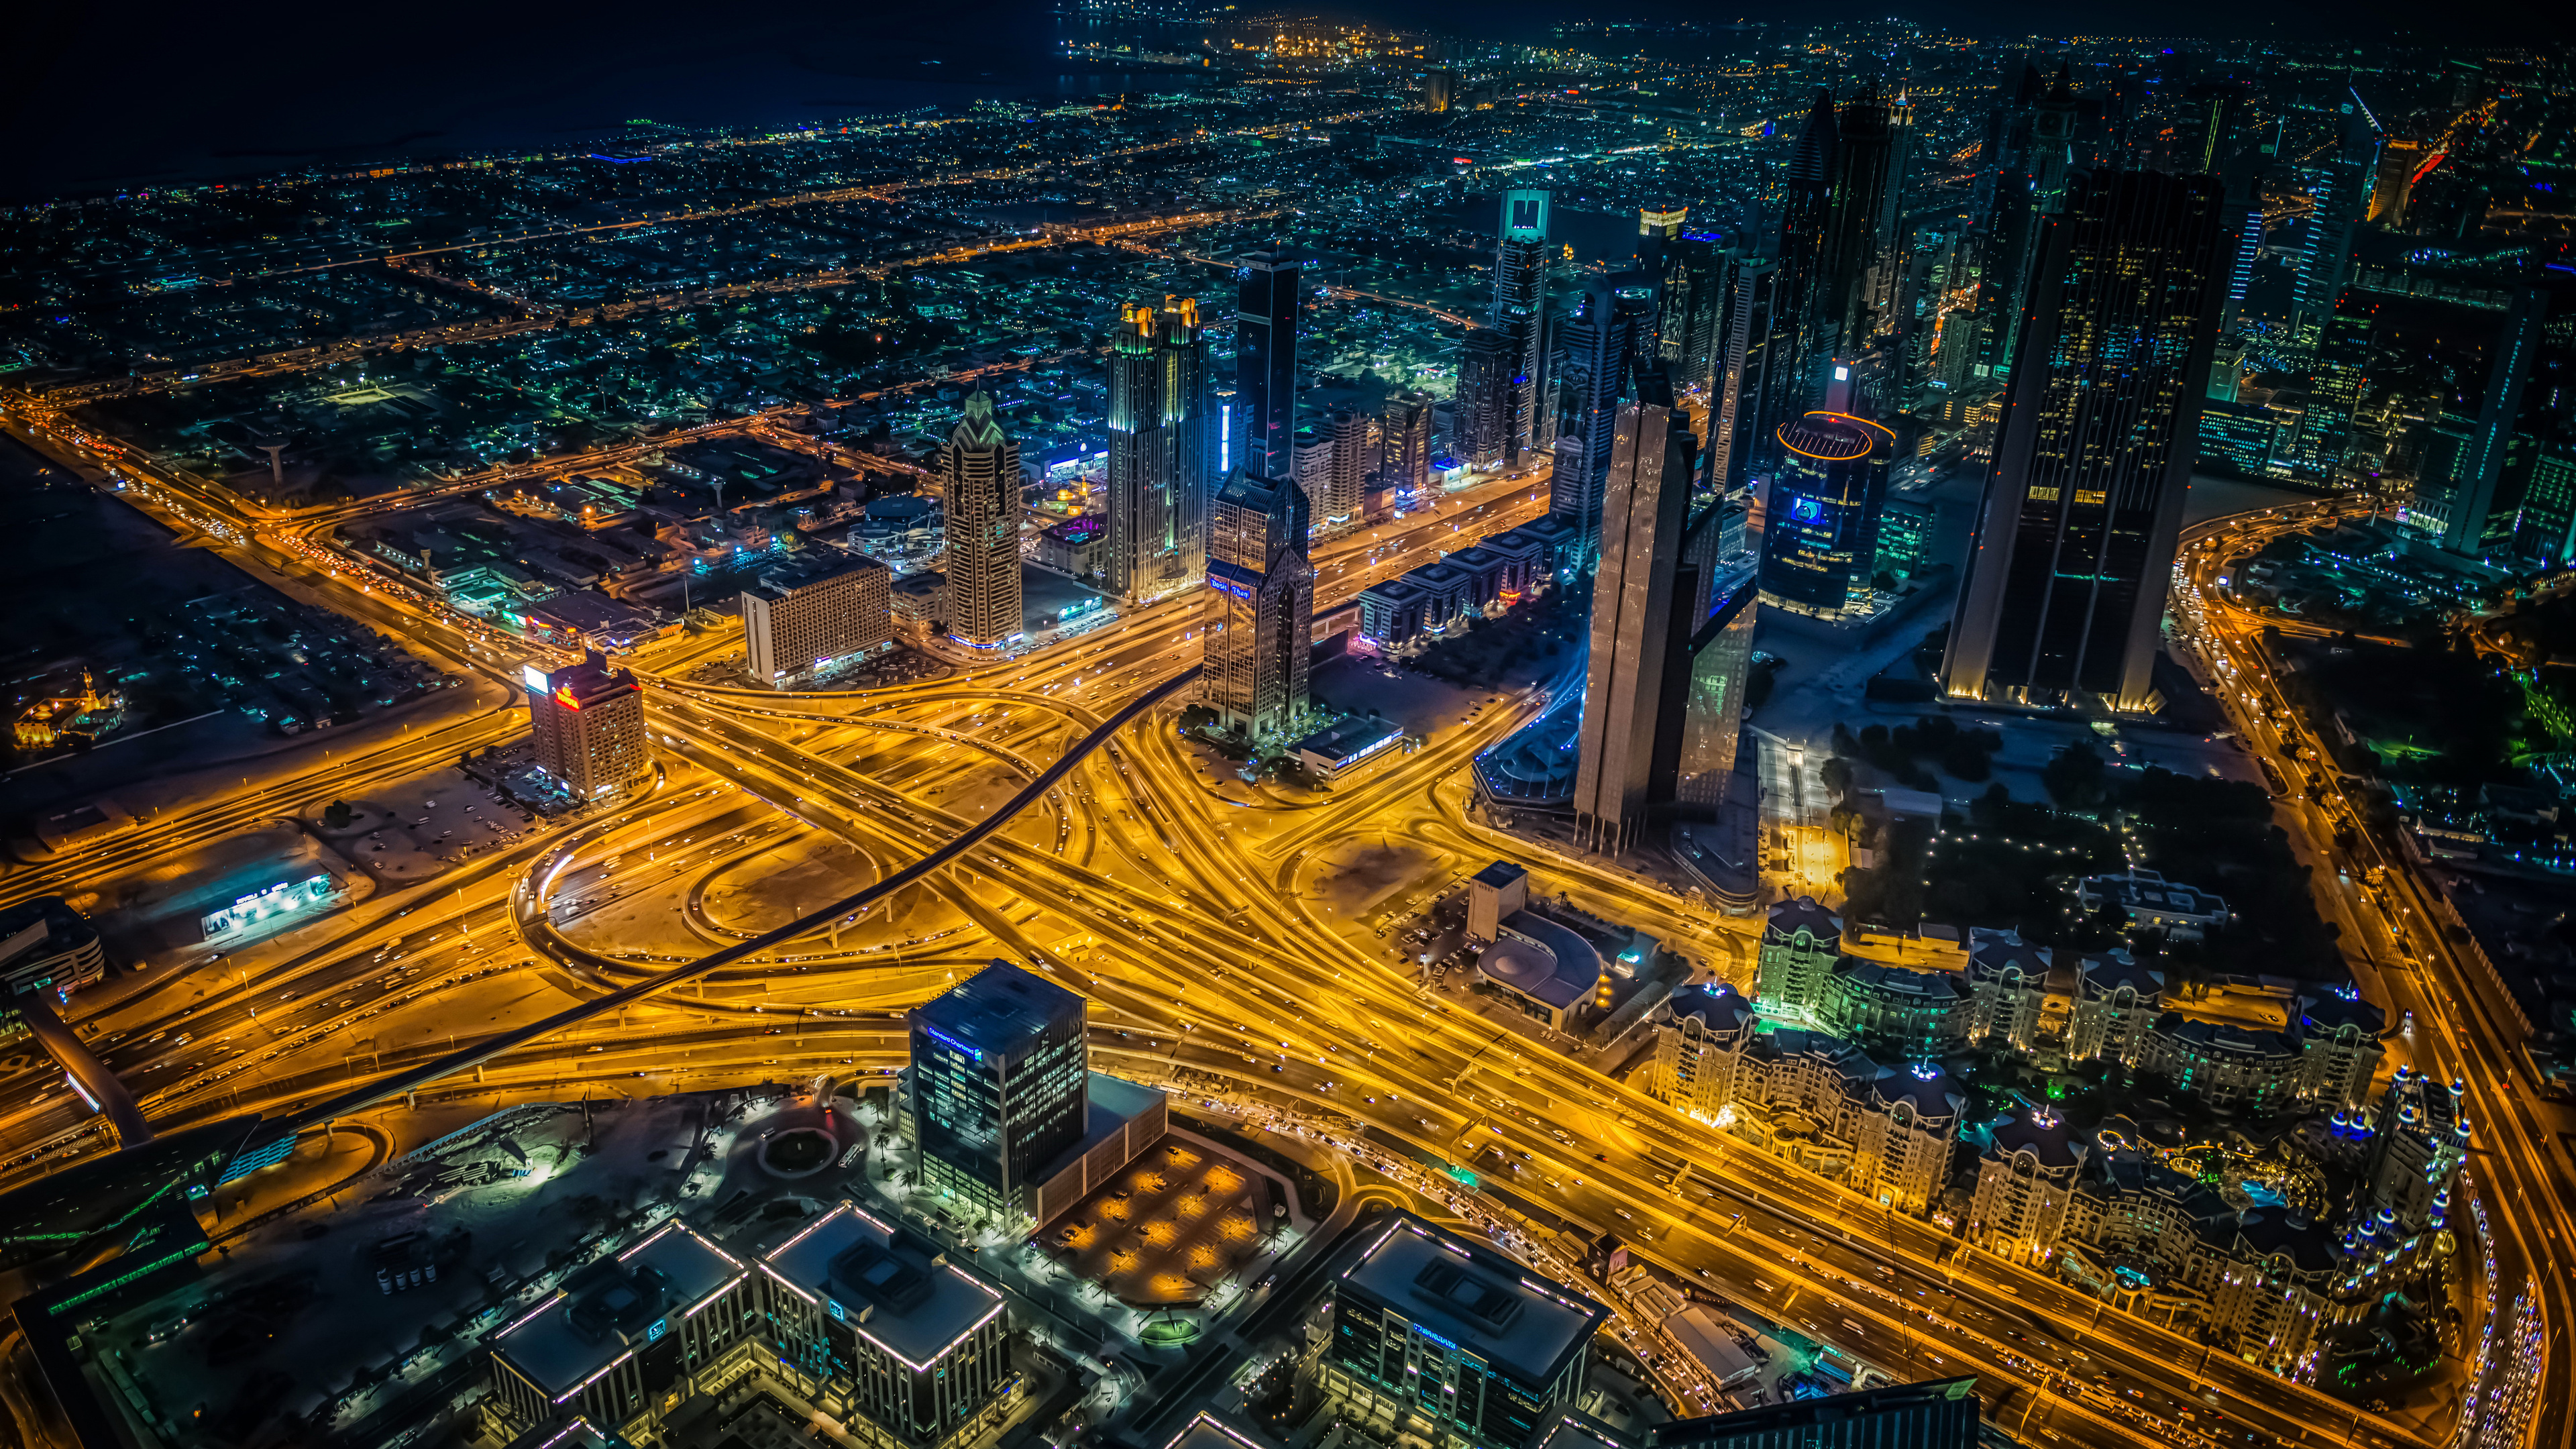 dubai building lights skycrappers 4k 1538072042 - Dubai Building Lights Skycrappers 4k - skycrapper wallpapers, photography wallpapers, night wallpapers, lights wallpapers, hd-wallpapers, dubai wallpapers, 4k-wallpapers